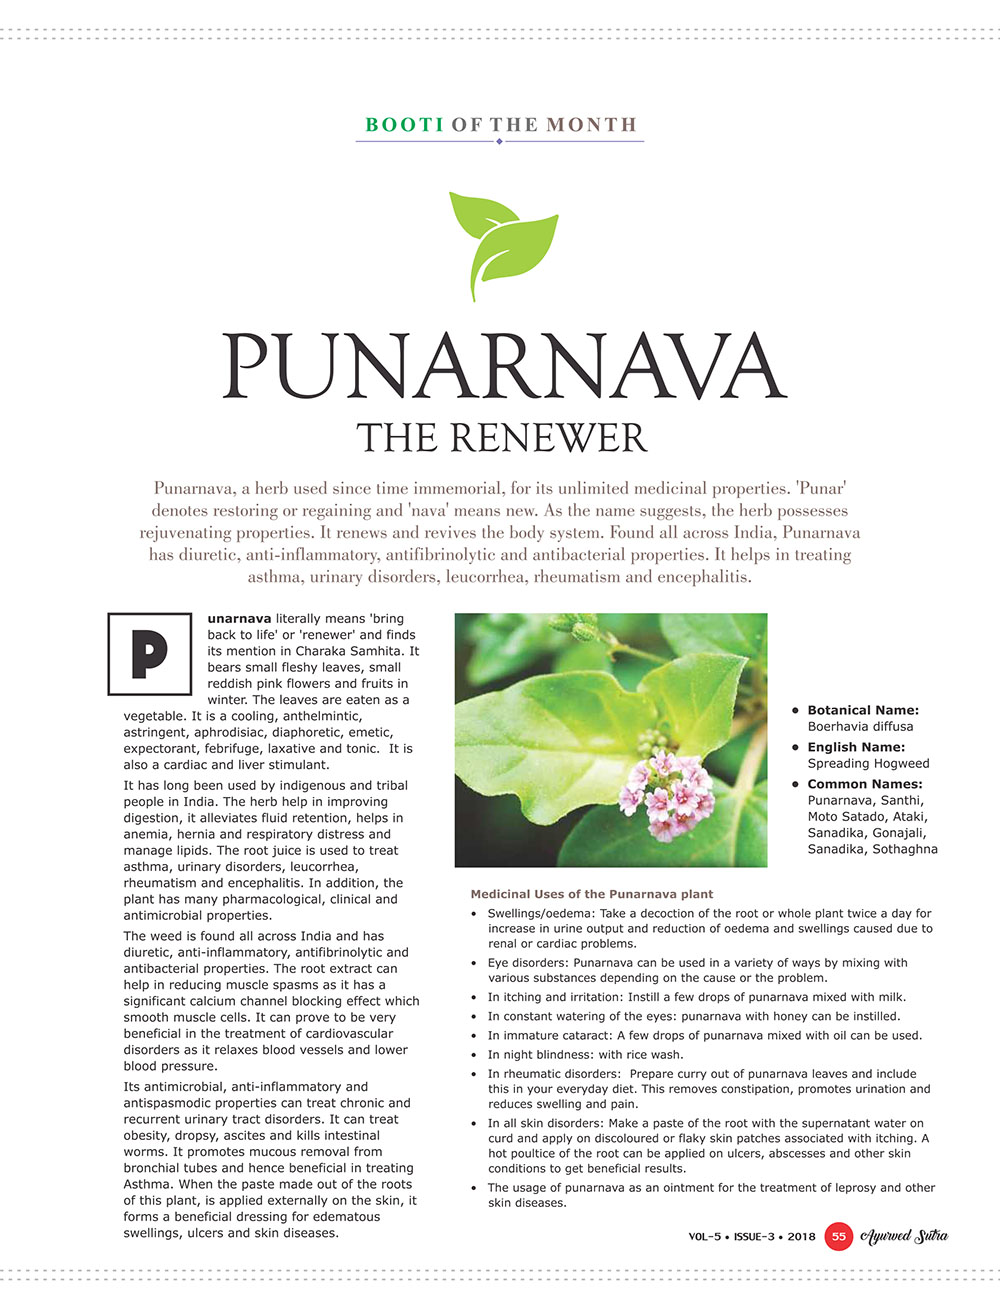 Ayurvedsutra Vol 05 issue 03 57 - Booti of the Month : Punarnava